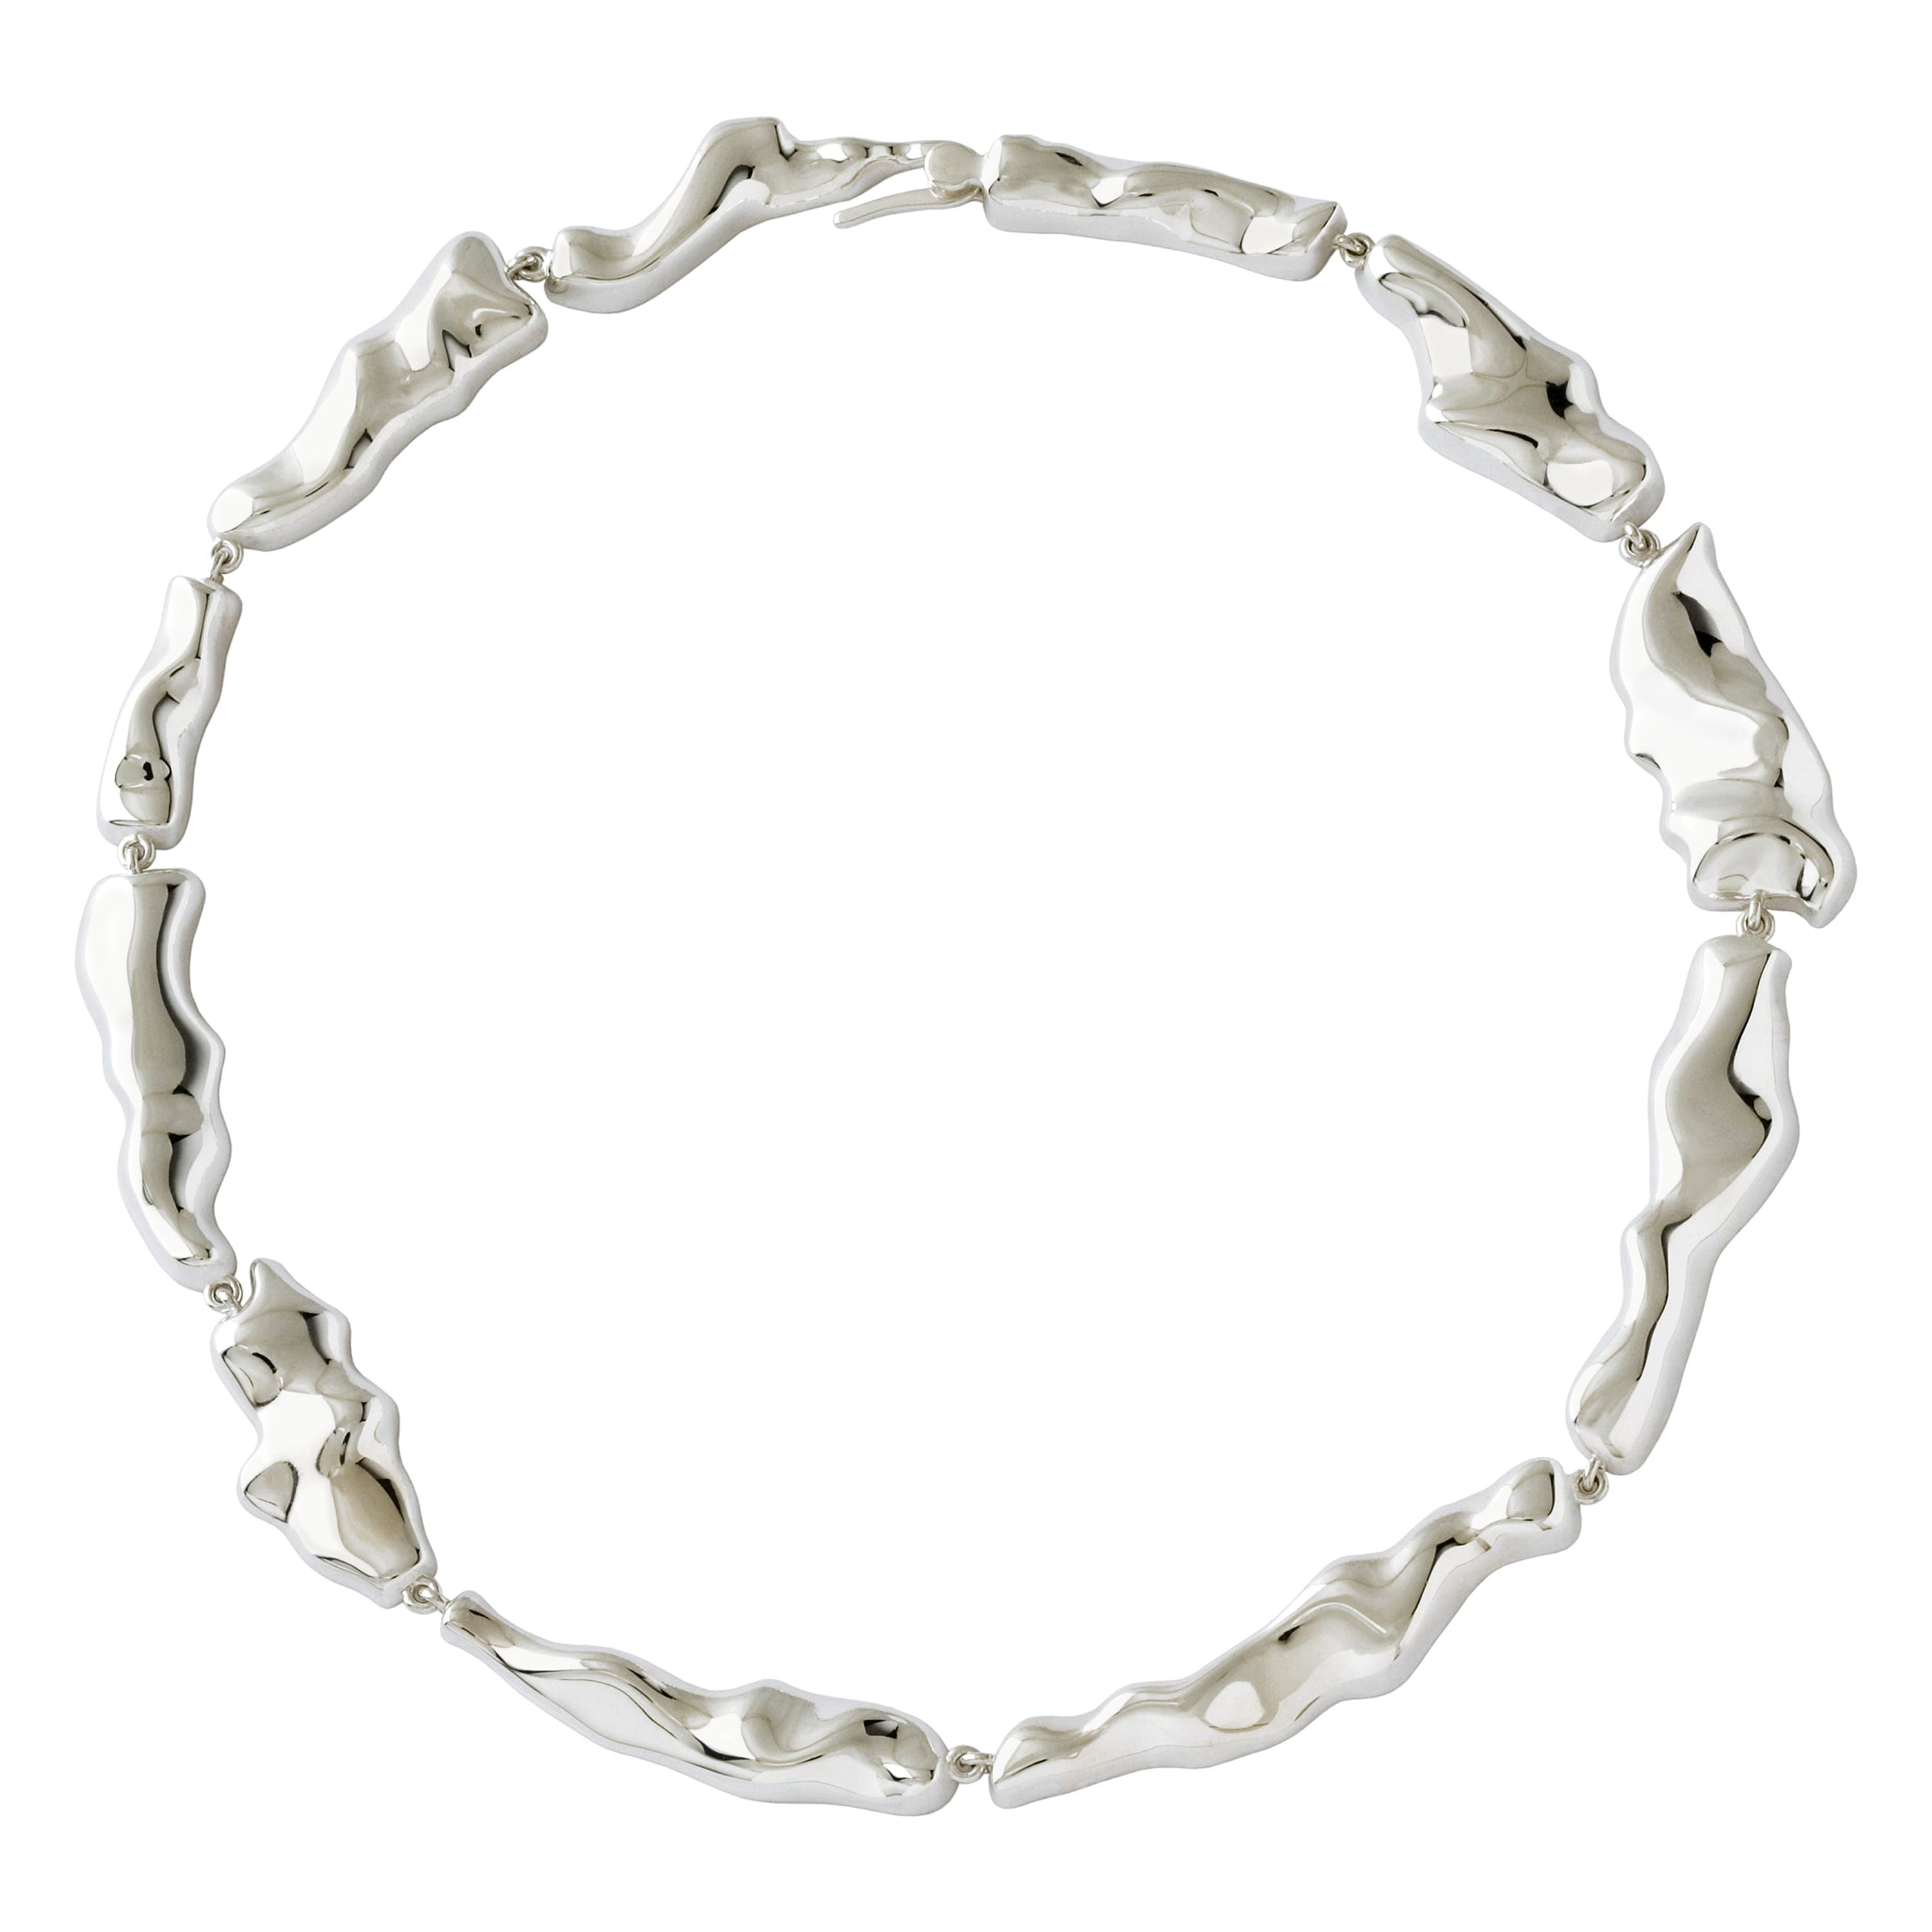 Nathalie Jean Contemporary Rhodium-Plated Sterling Silver Link Choker Necklace